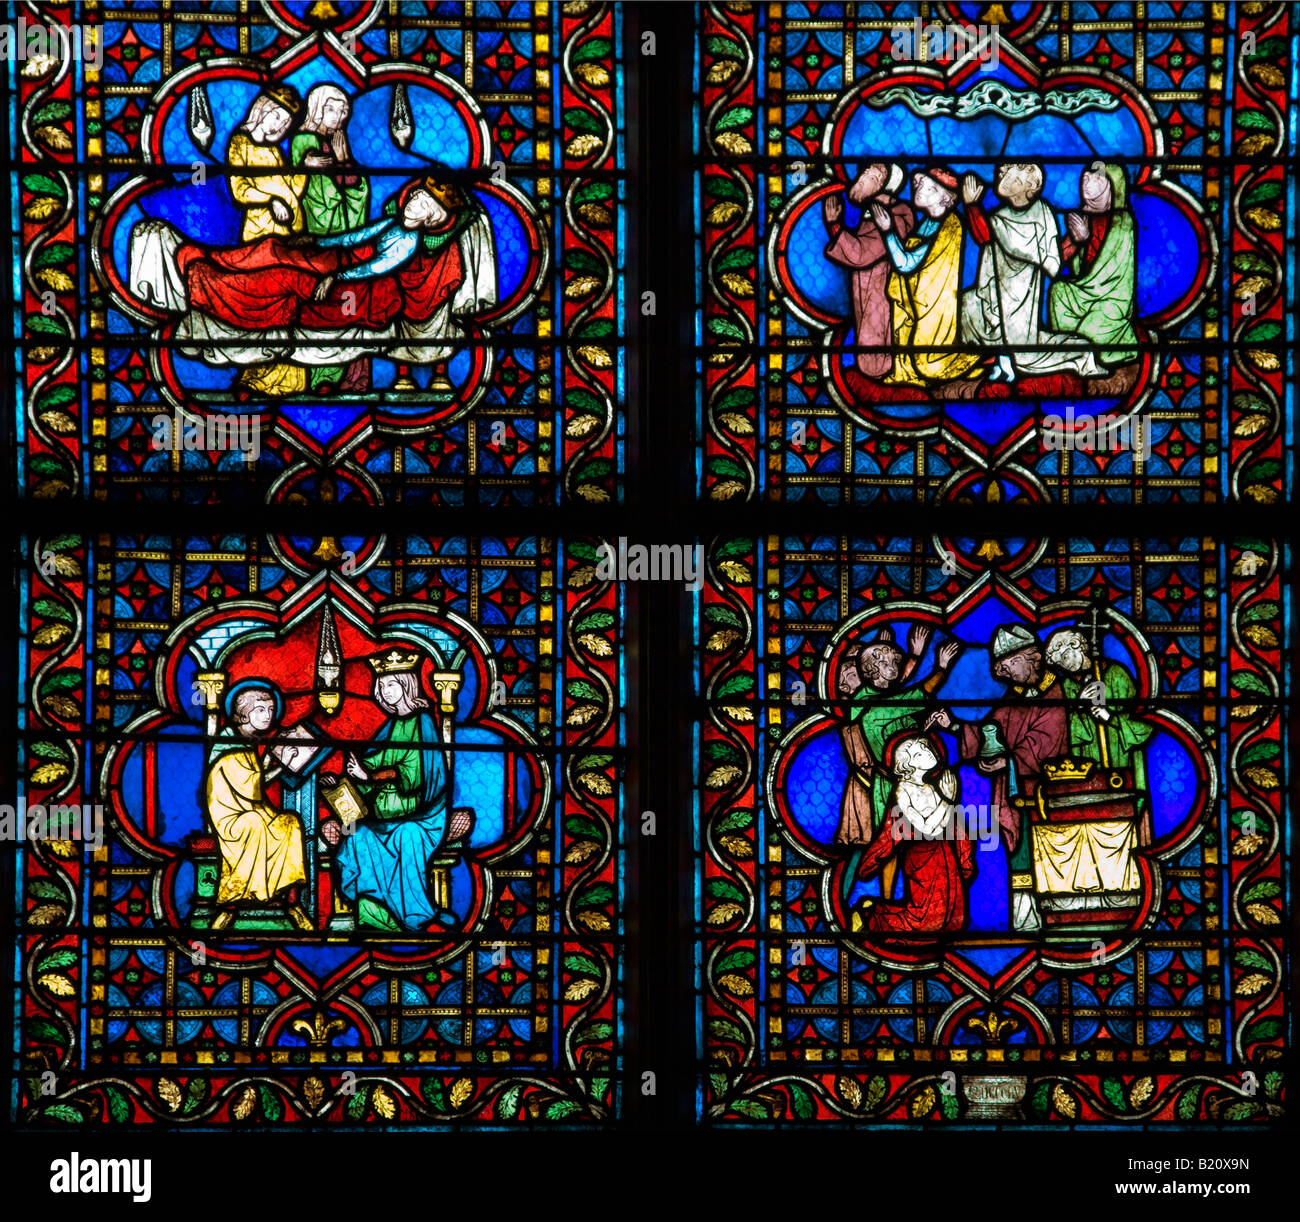 Notre Dame Cathedral interior medieval stained glass panels Paris France Europe EU - Stock Image